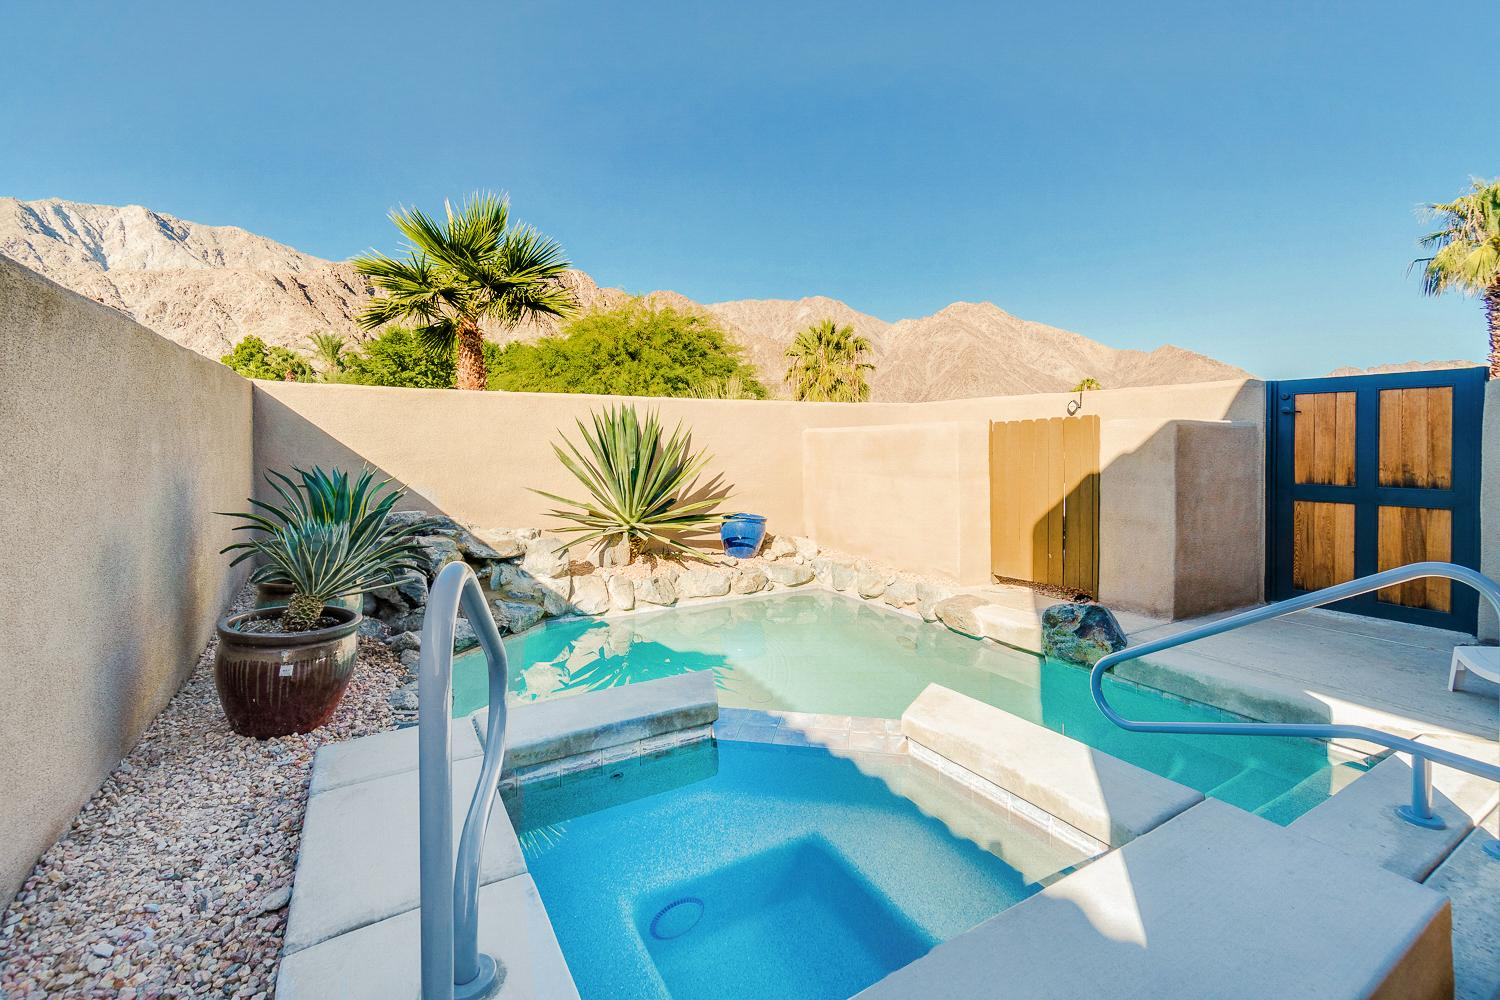 Welcome to La Quinta! The vacation-ready backyard includes a private pool, palm trees, and dramatic mountain backdrop.